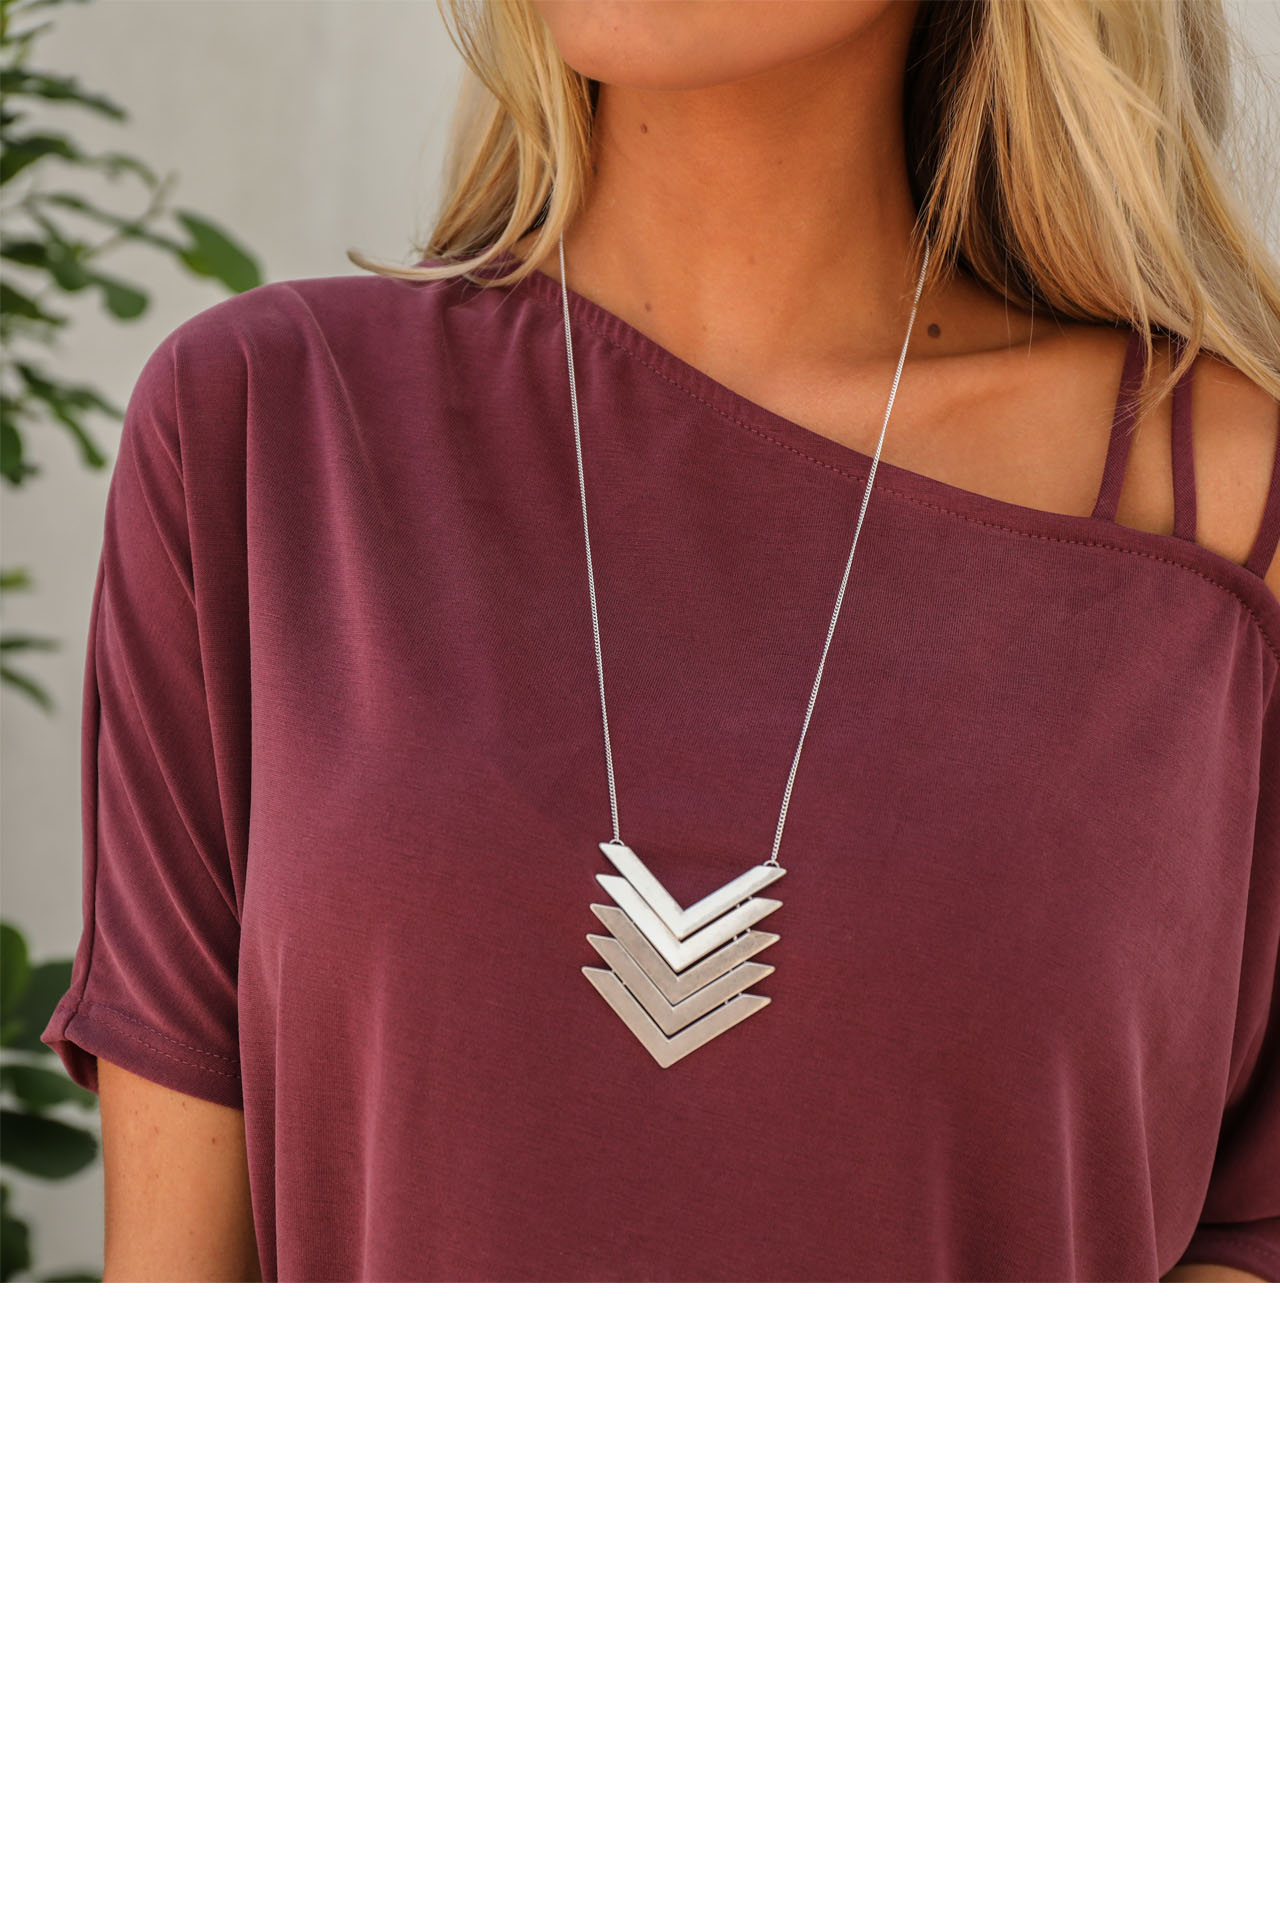 Silver Necklace with Layered Chevron Print Pendant